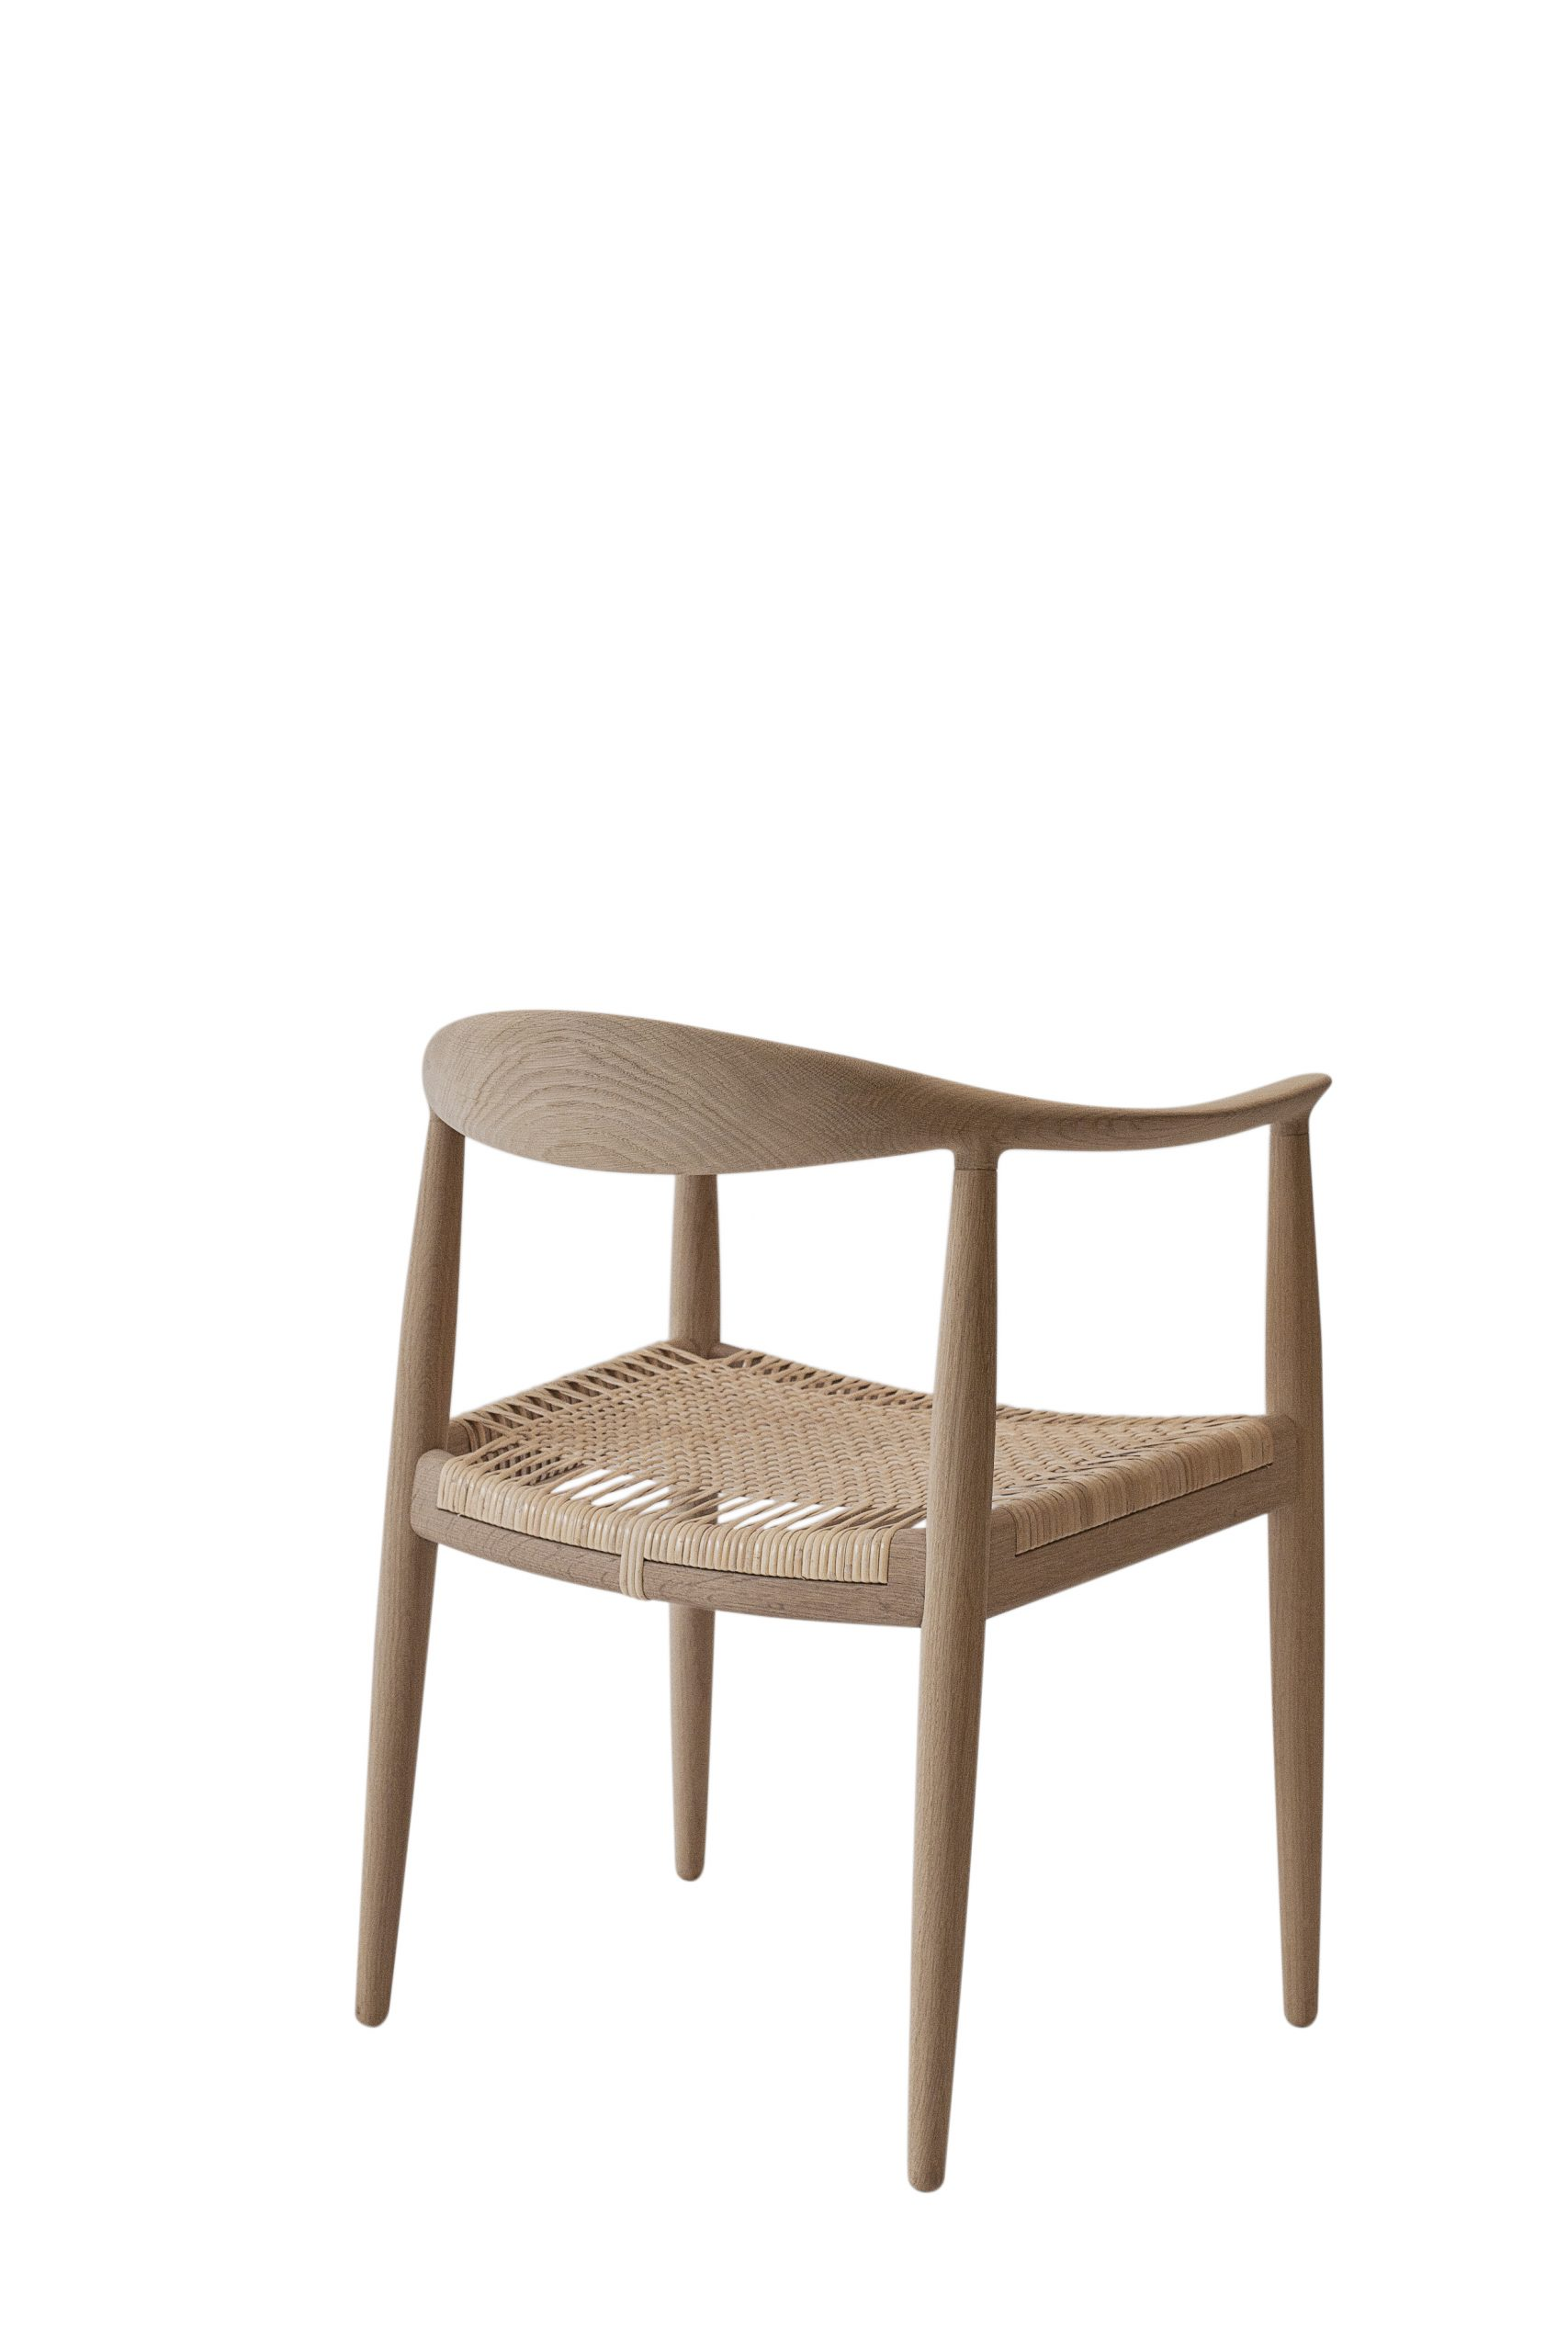 PP Møbler - pp501 Round Chair